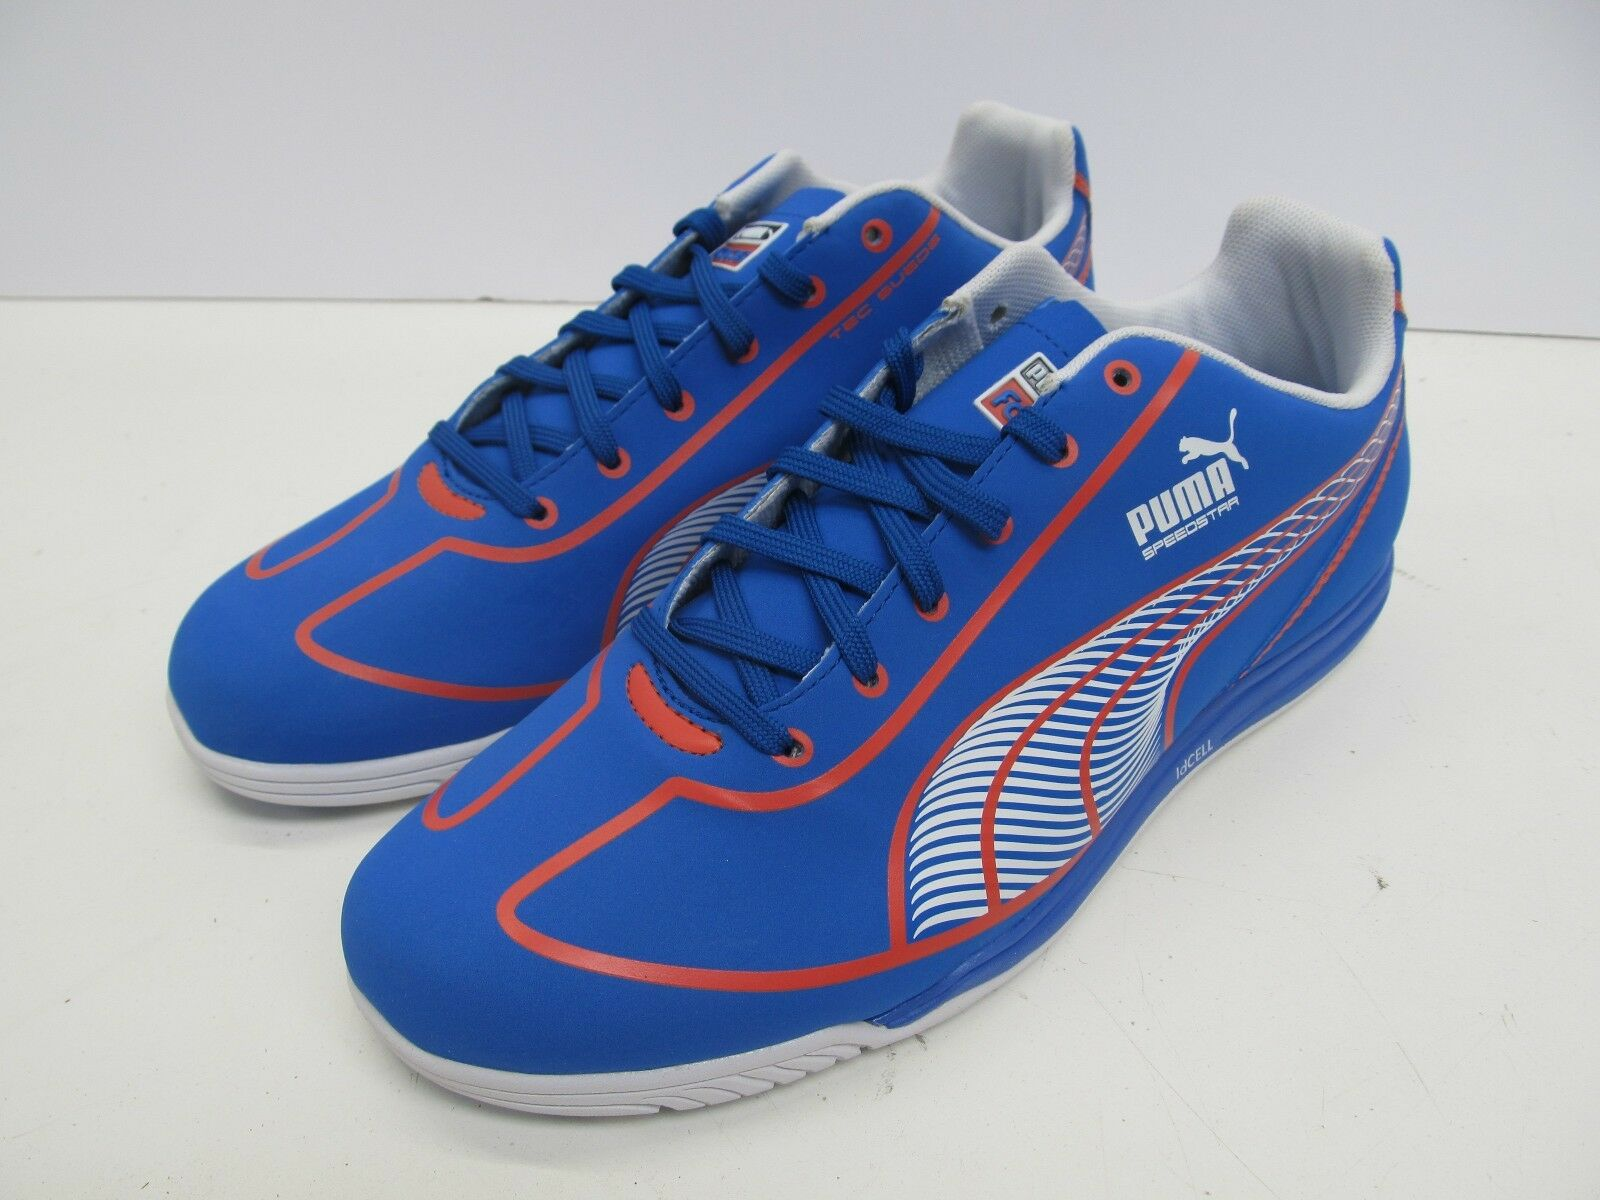 NEW Donna TRAINING / INDOOR SOCCER scarpe - PUMA FAAS SPEED STAR - PALACE blu